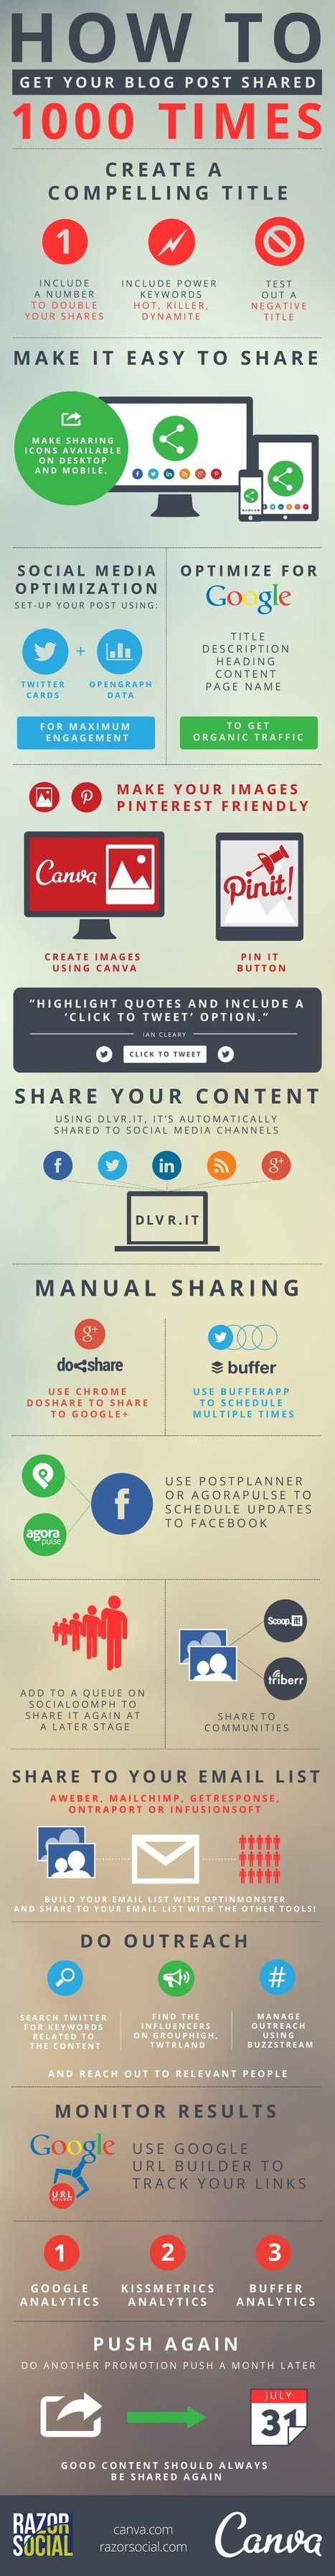 How to Promote Your Blog Content to Get 1,000 Social Media Shares | Infographic | visualizing #socialmediatips | Scoop.it